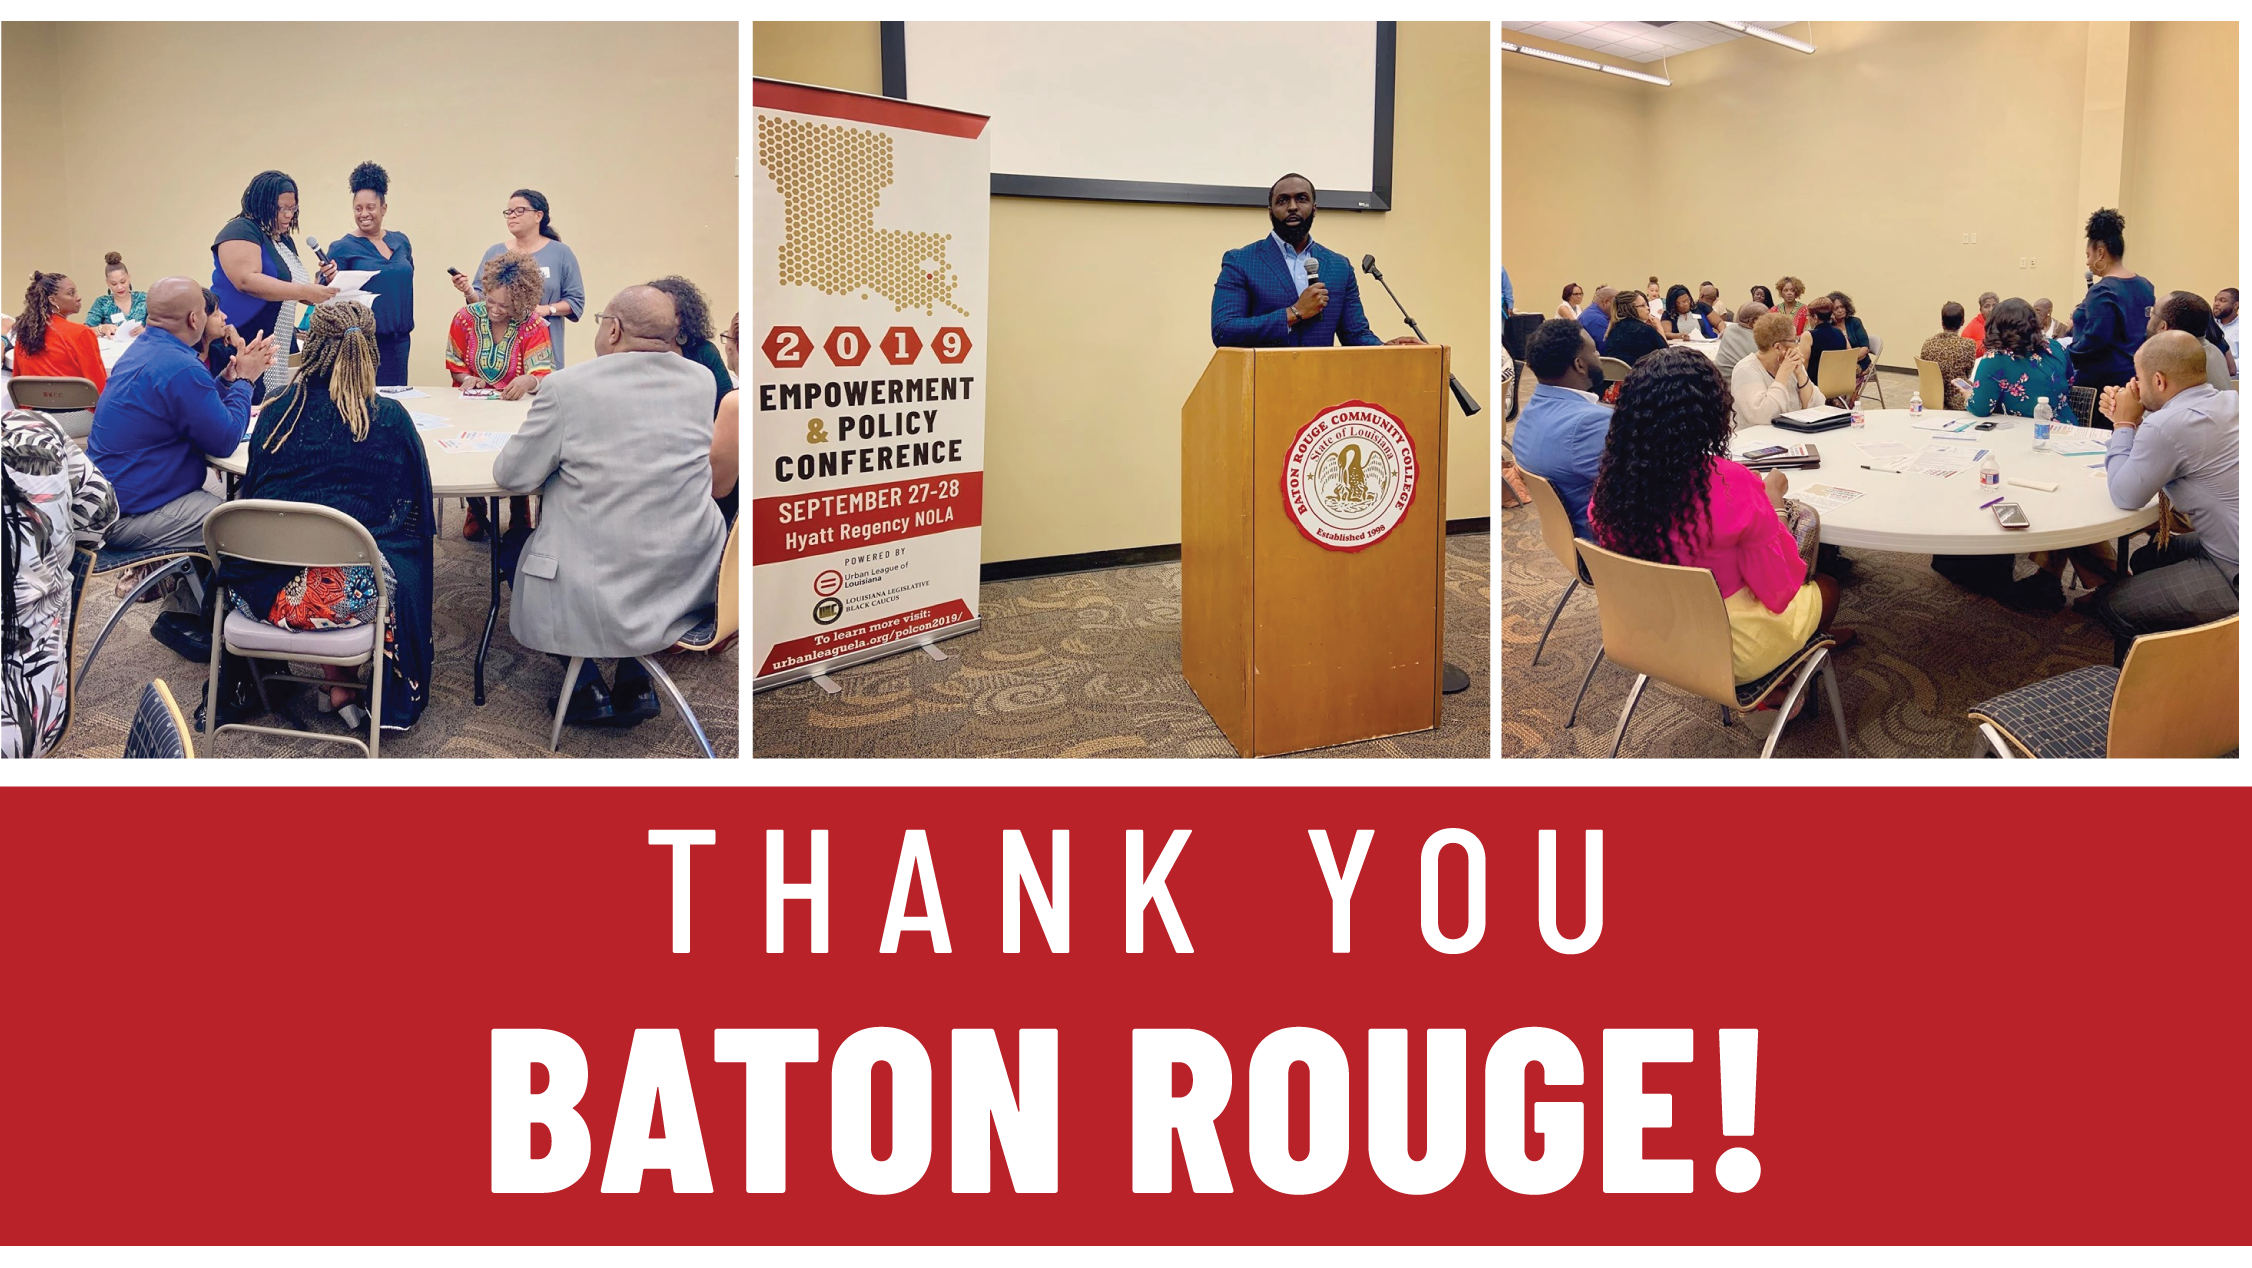 Thank you Baton Rouge